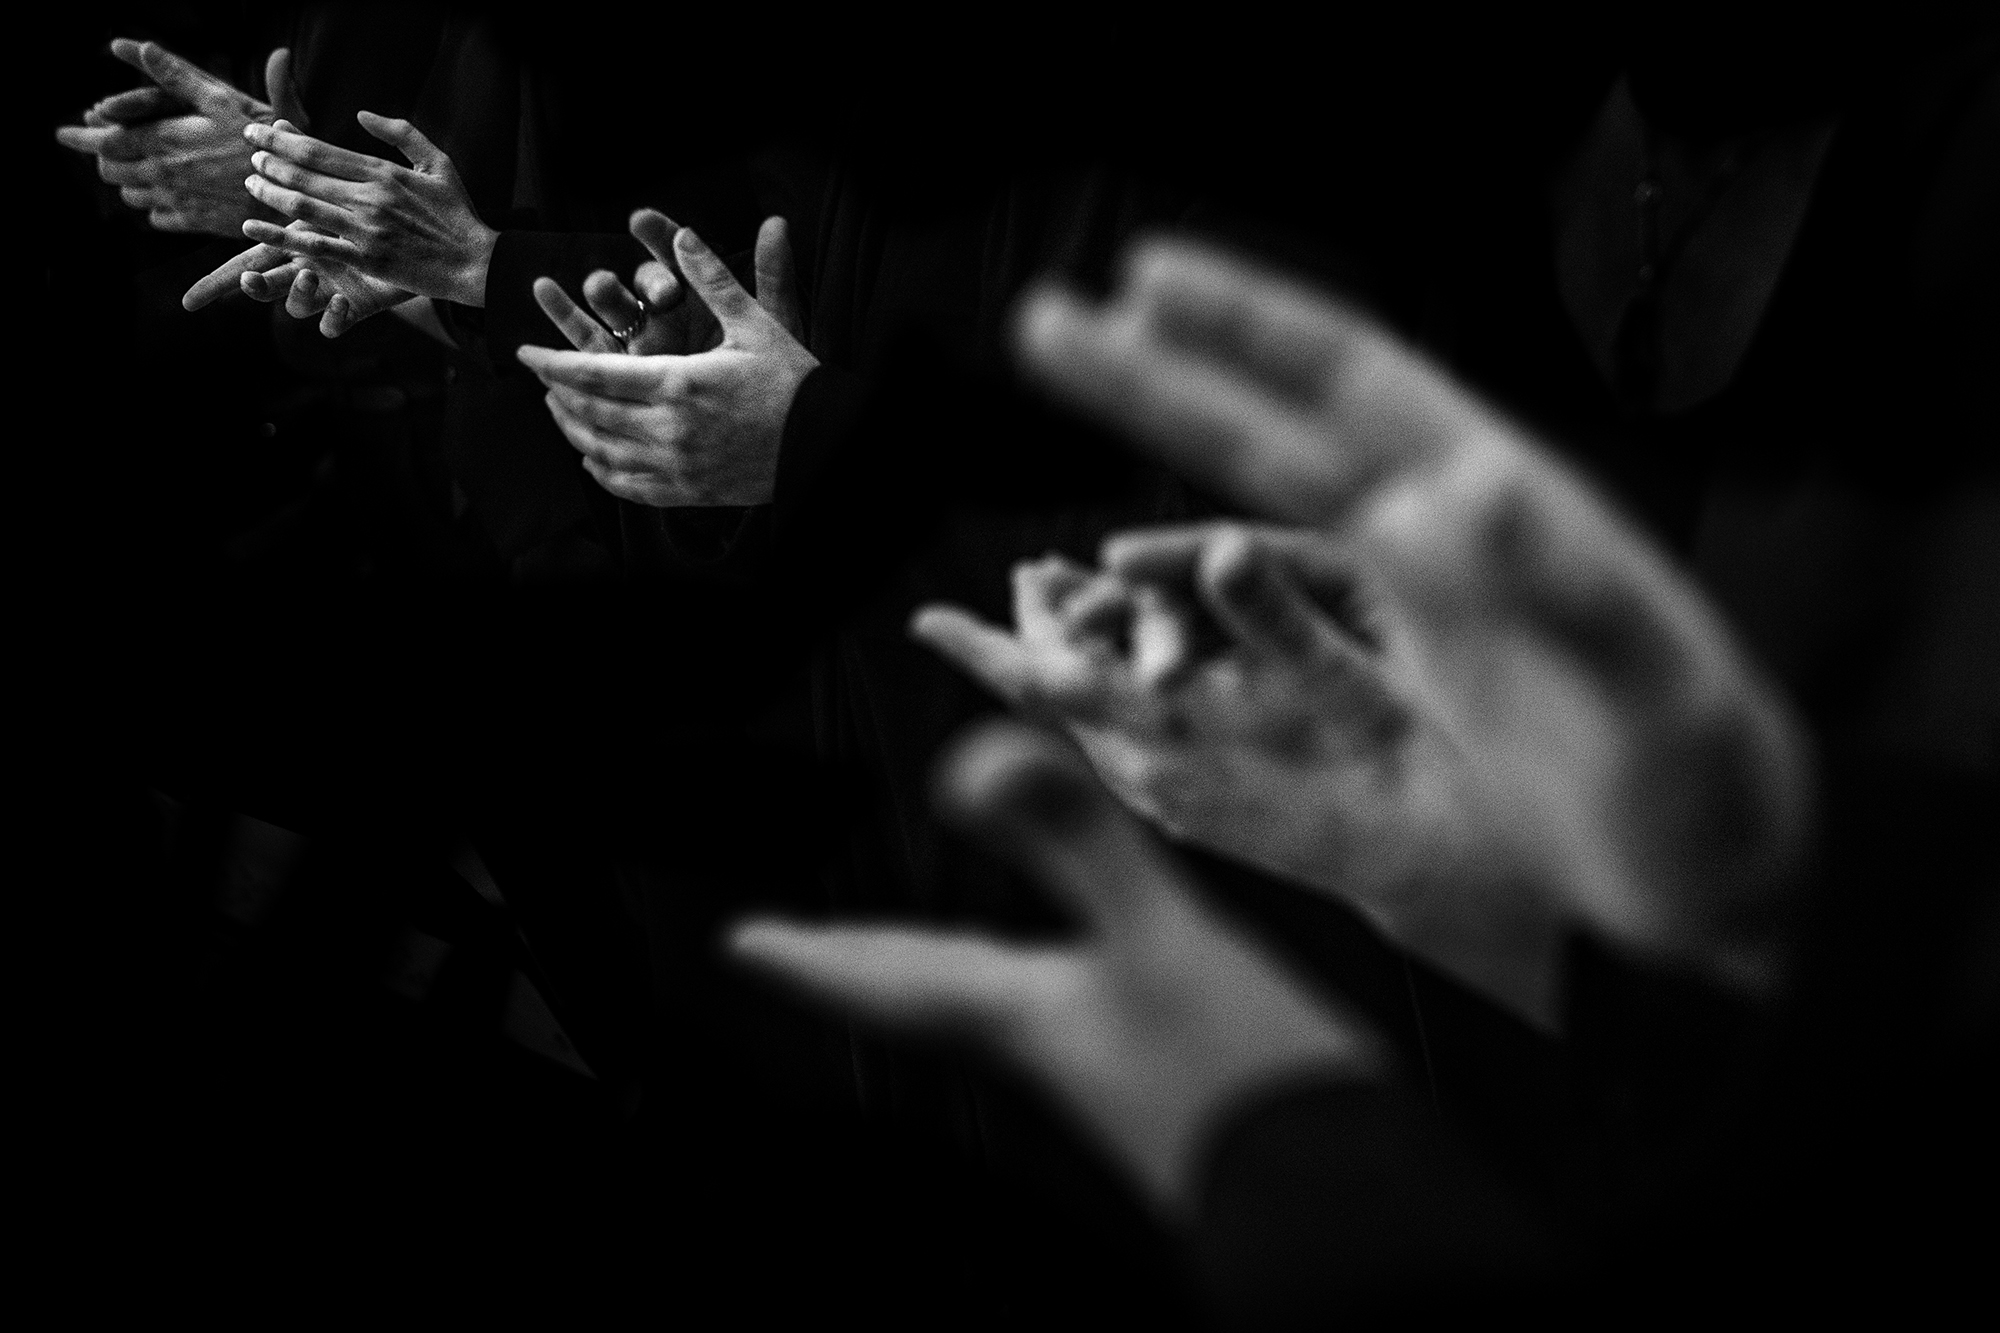 Hands clapping - photo by Victor Lax